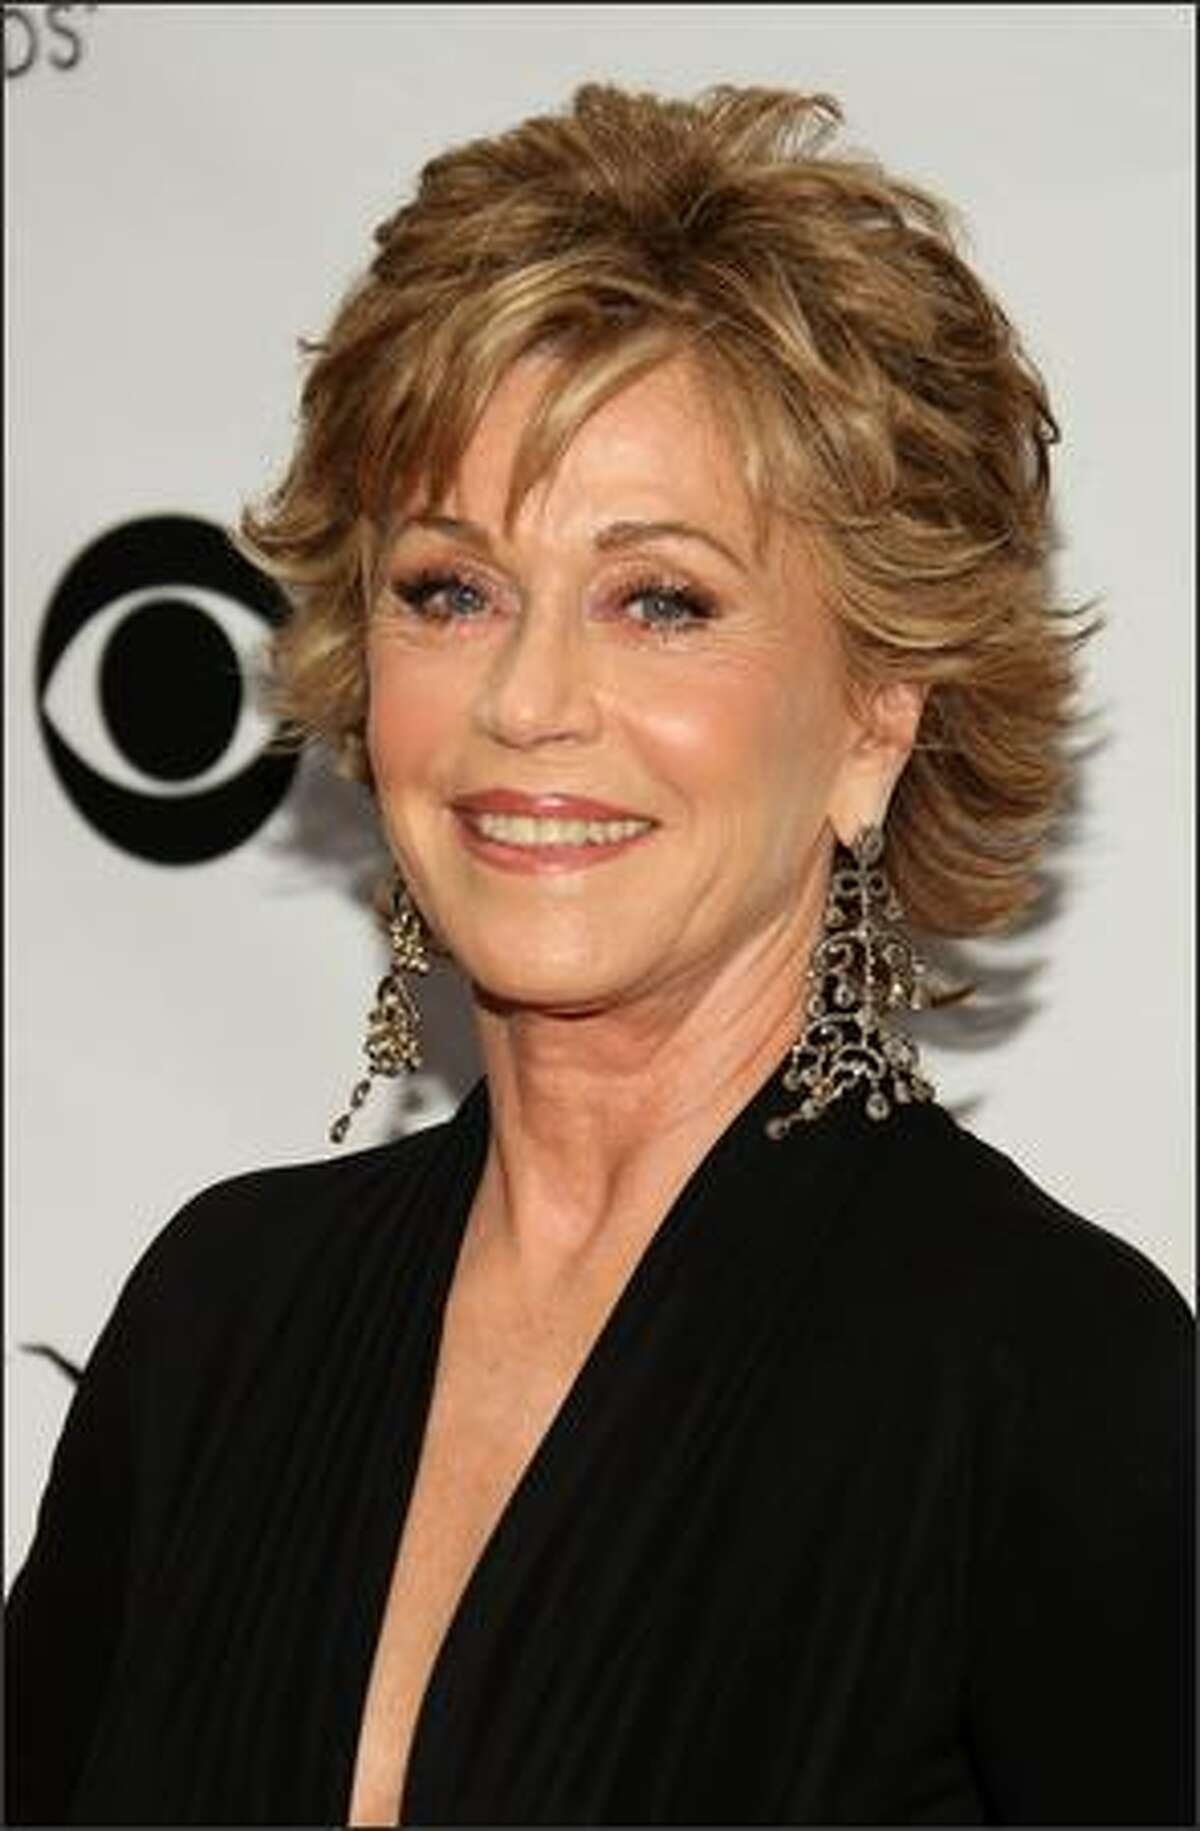 Actress Jane Fonda attends the 63rd Annual Tony Awards at Radio City Music Hall on Sunday in New York City.